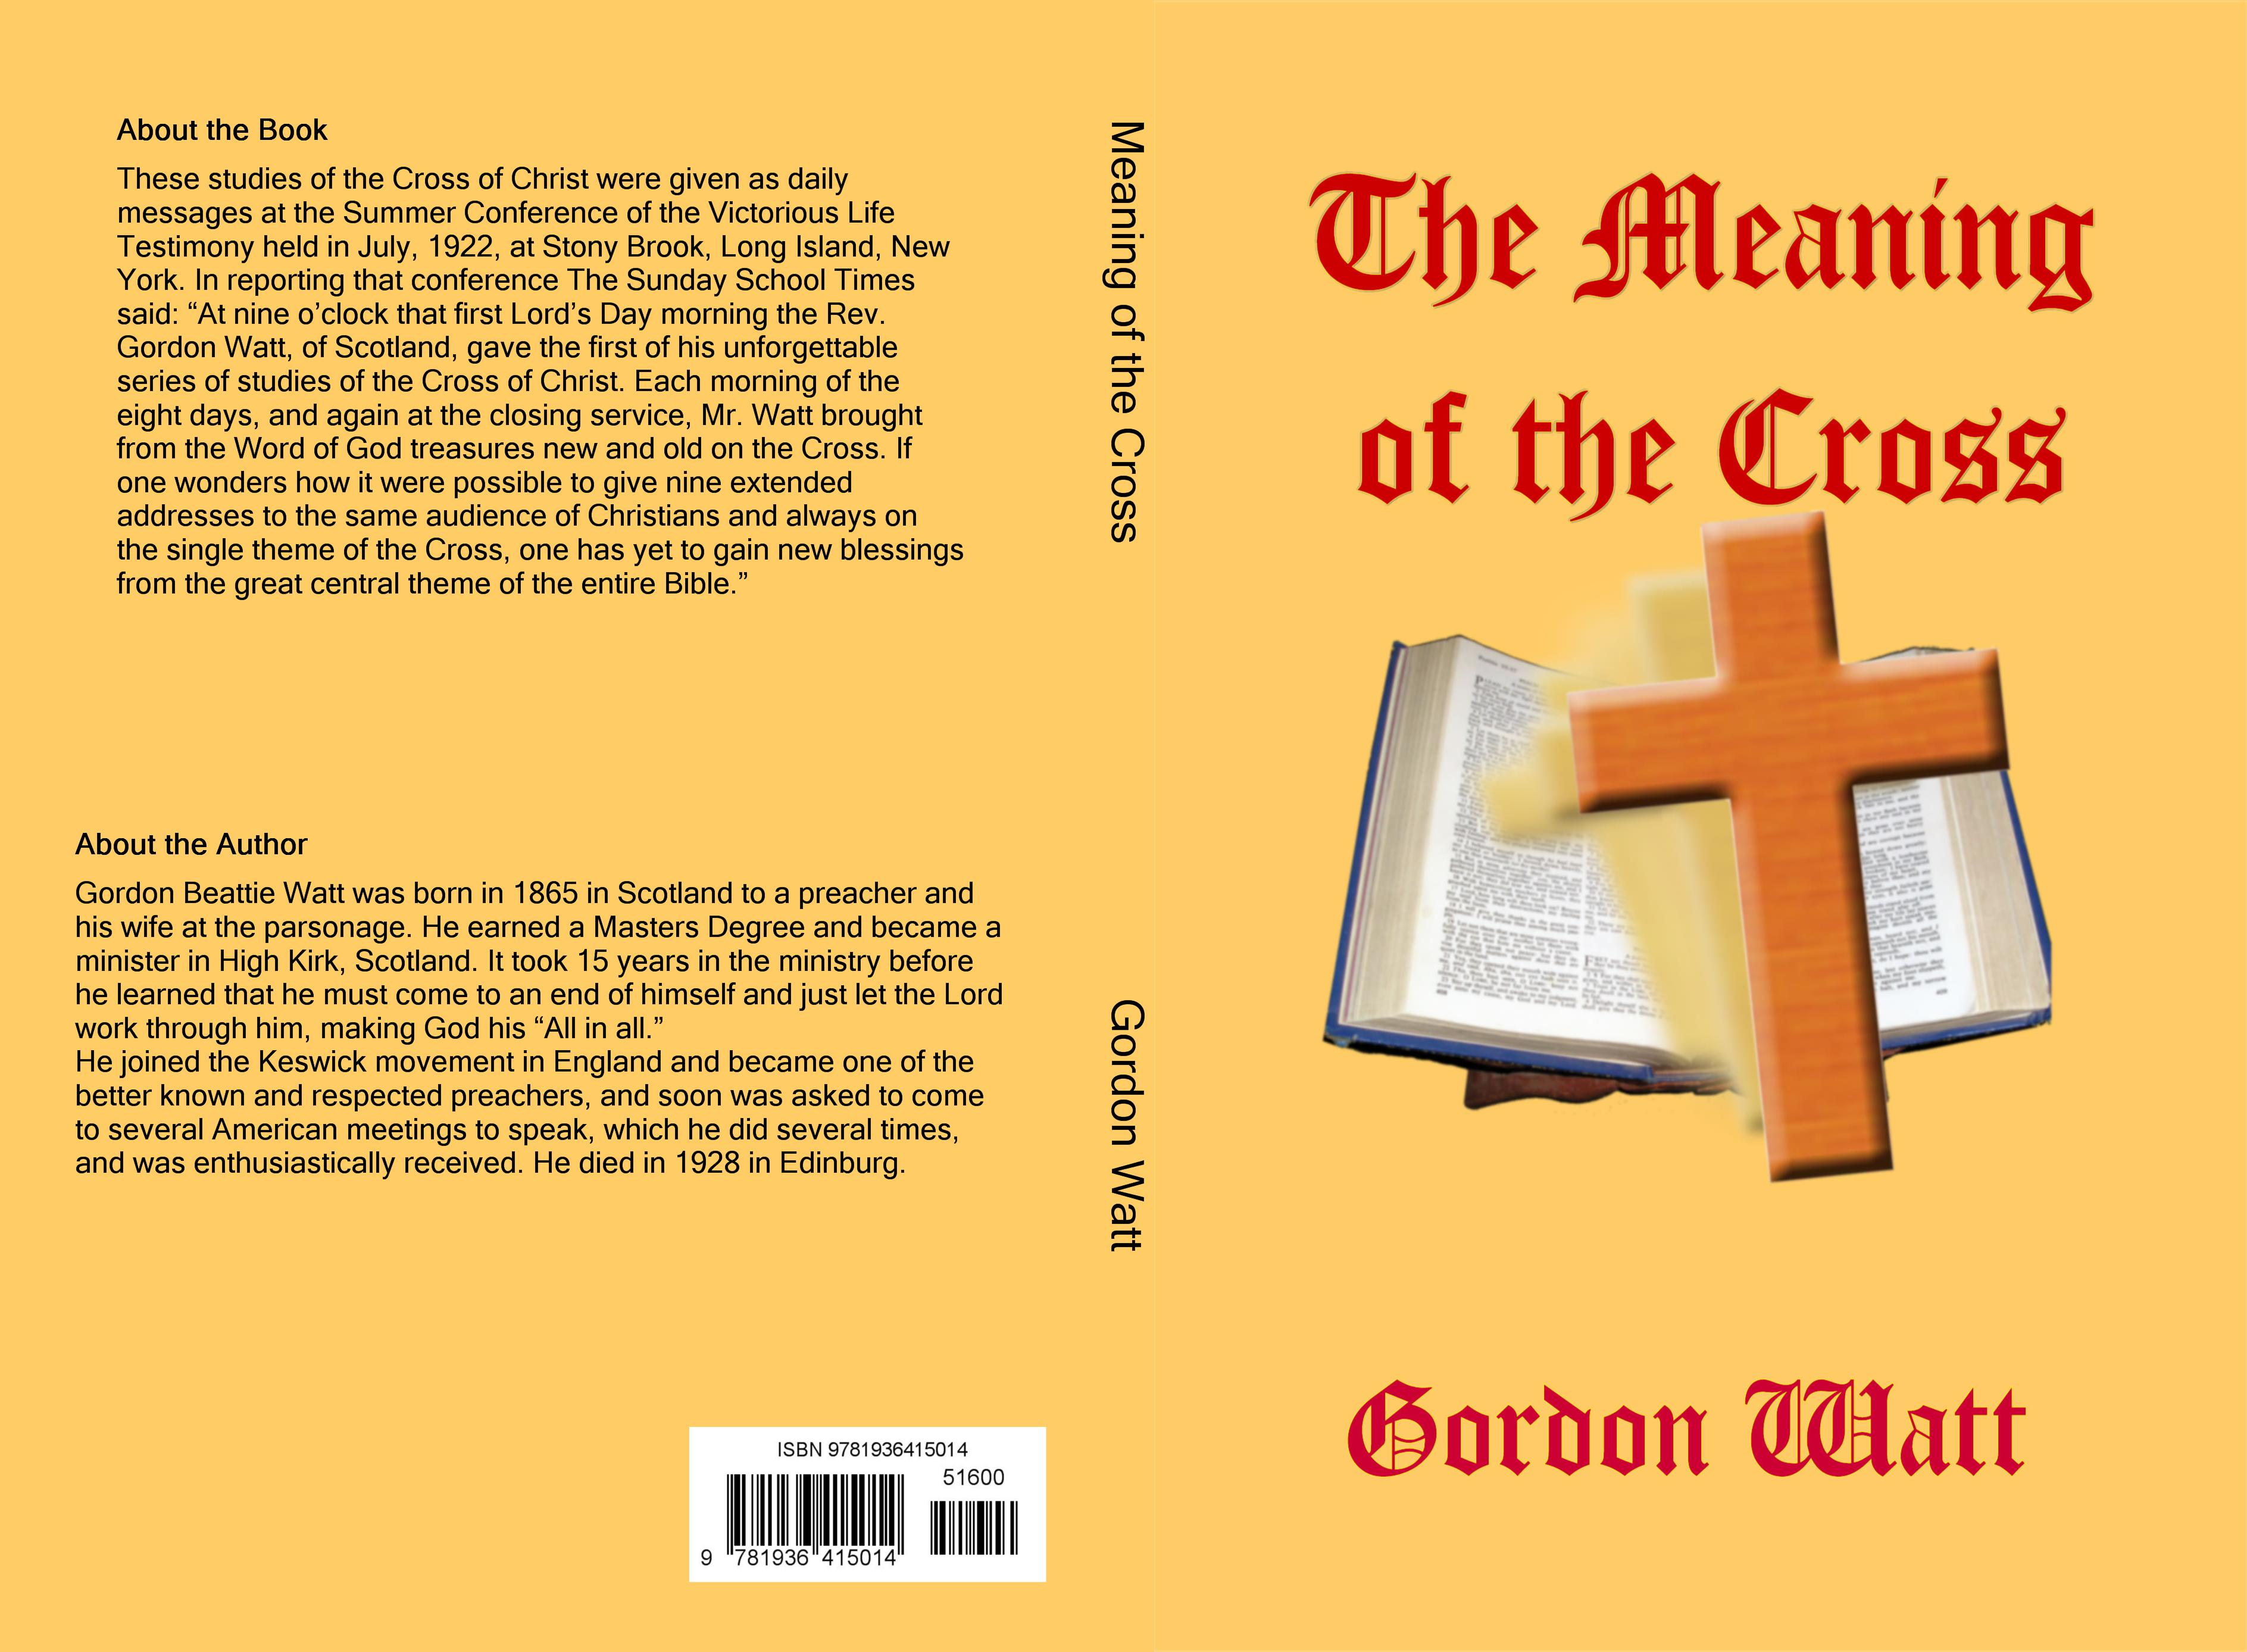 The Many Meanings of the Cross